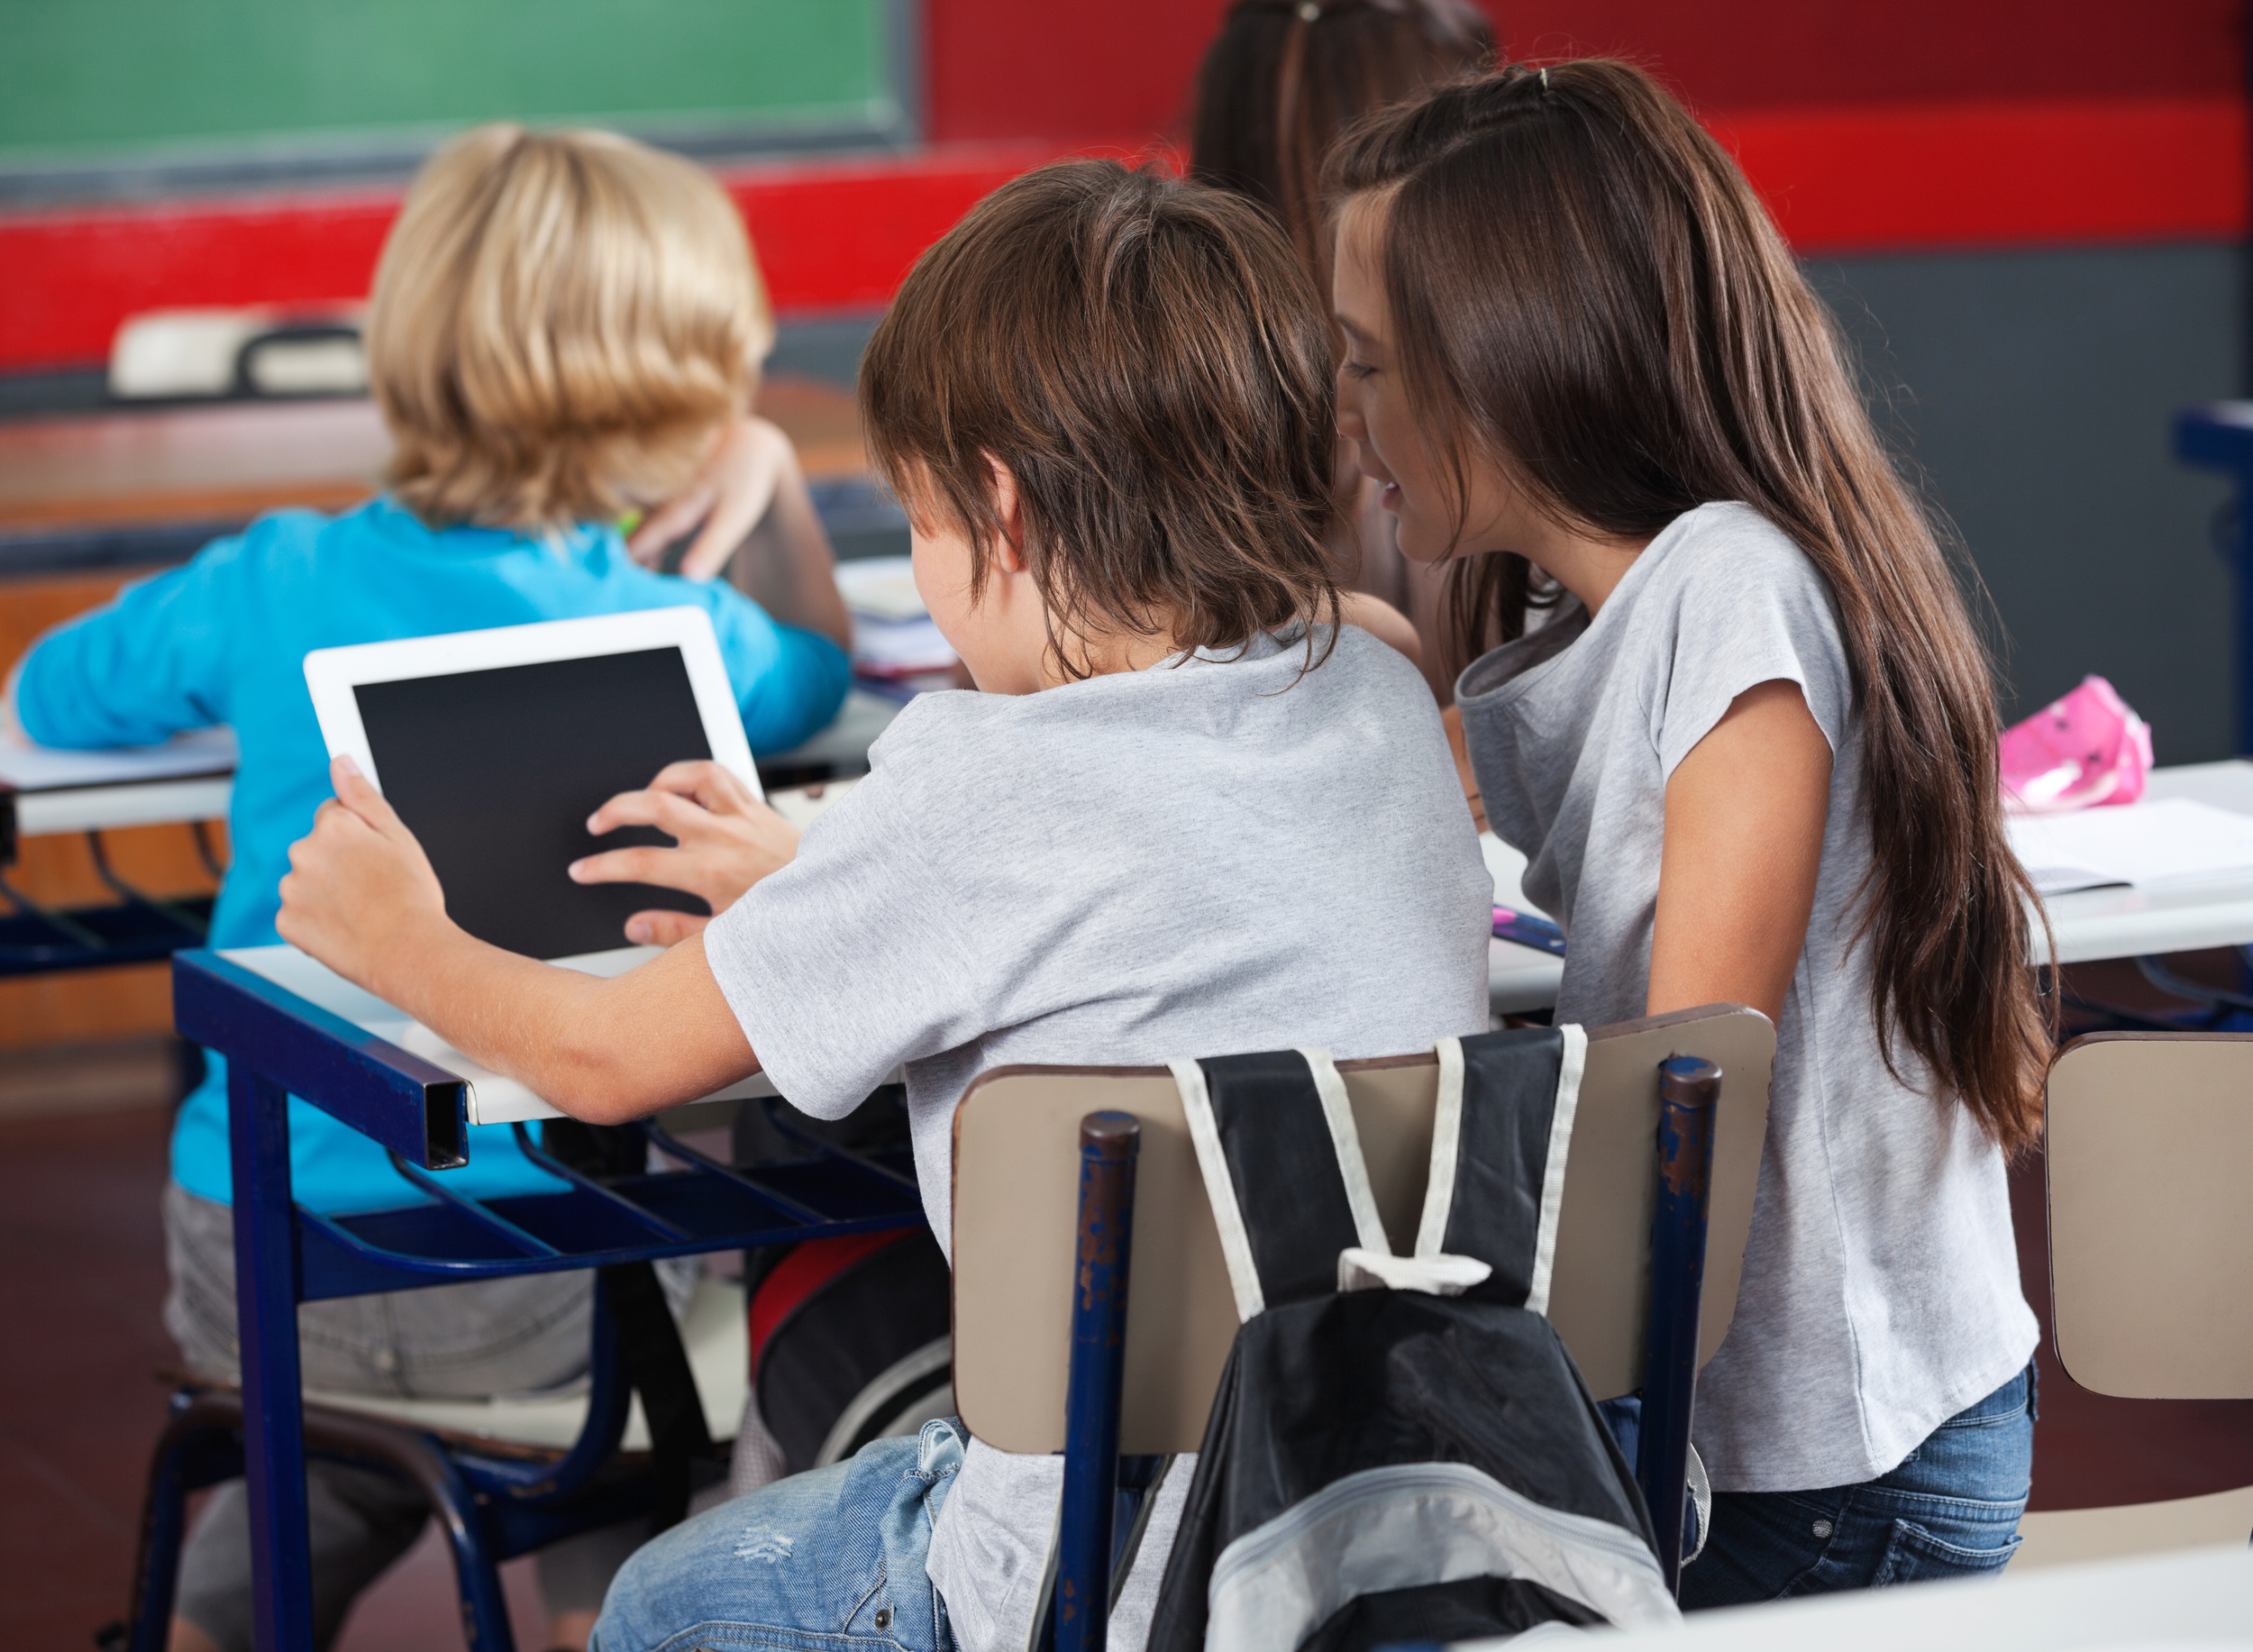 Classroom learning has become a more social and and technology integrated experience.